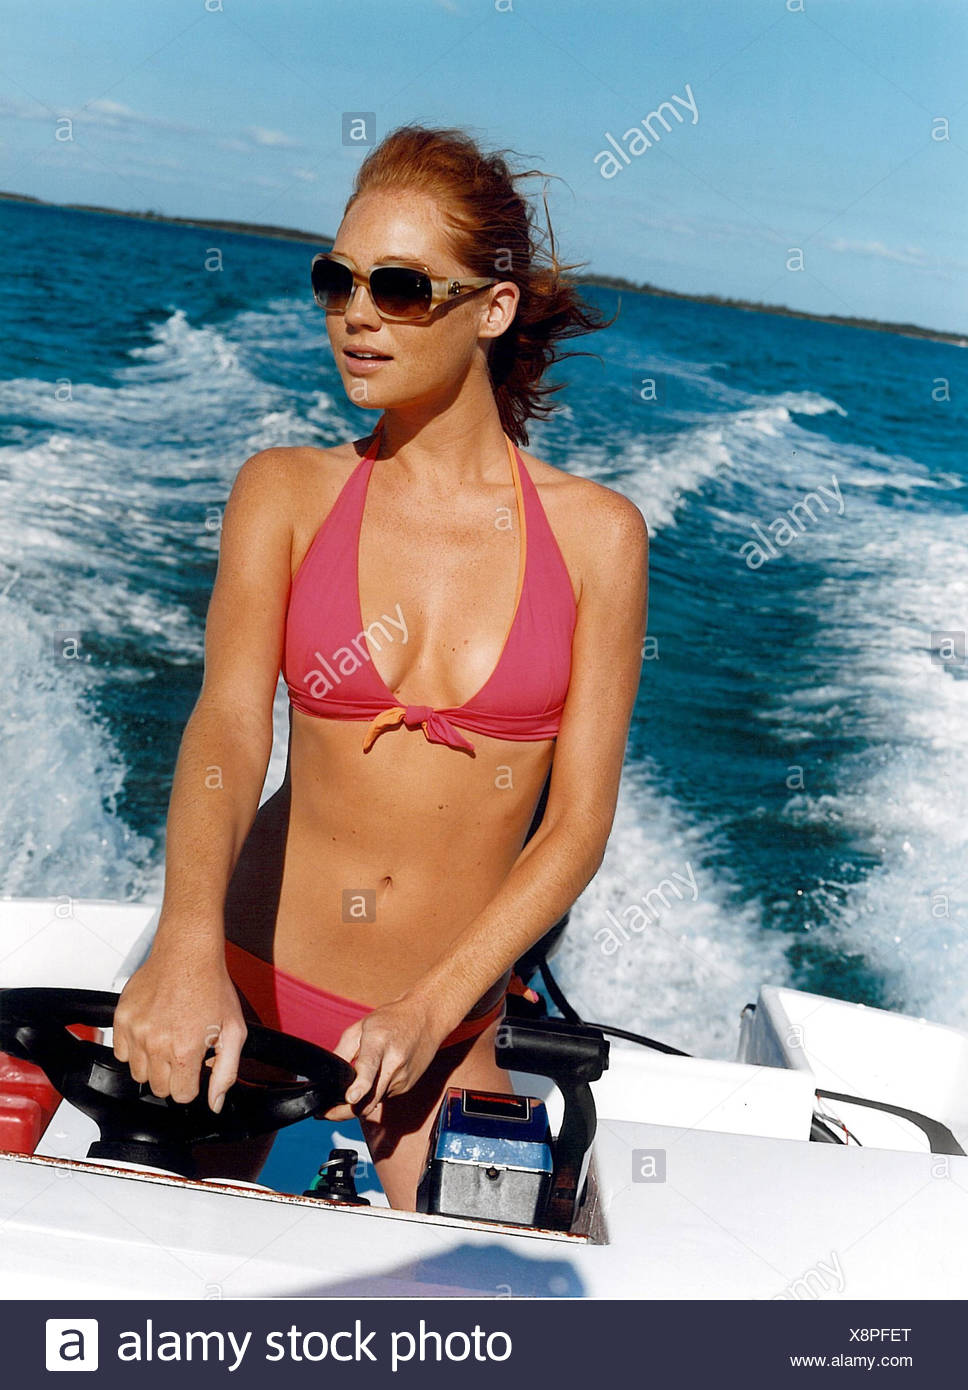 Female wearing a pink bikini and sunglasses with red hair tied back in a  pony tail driving a motboat Frowein